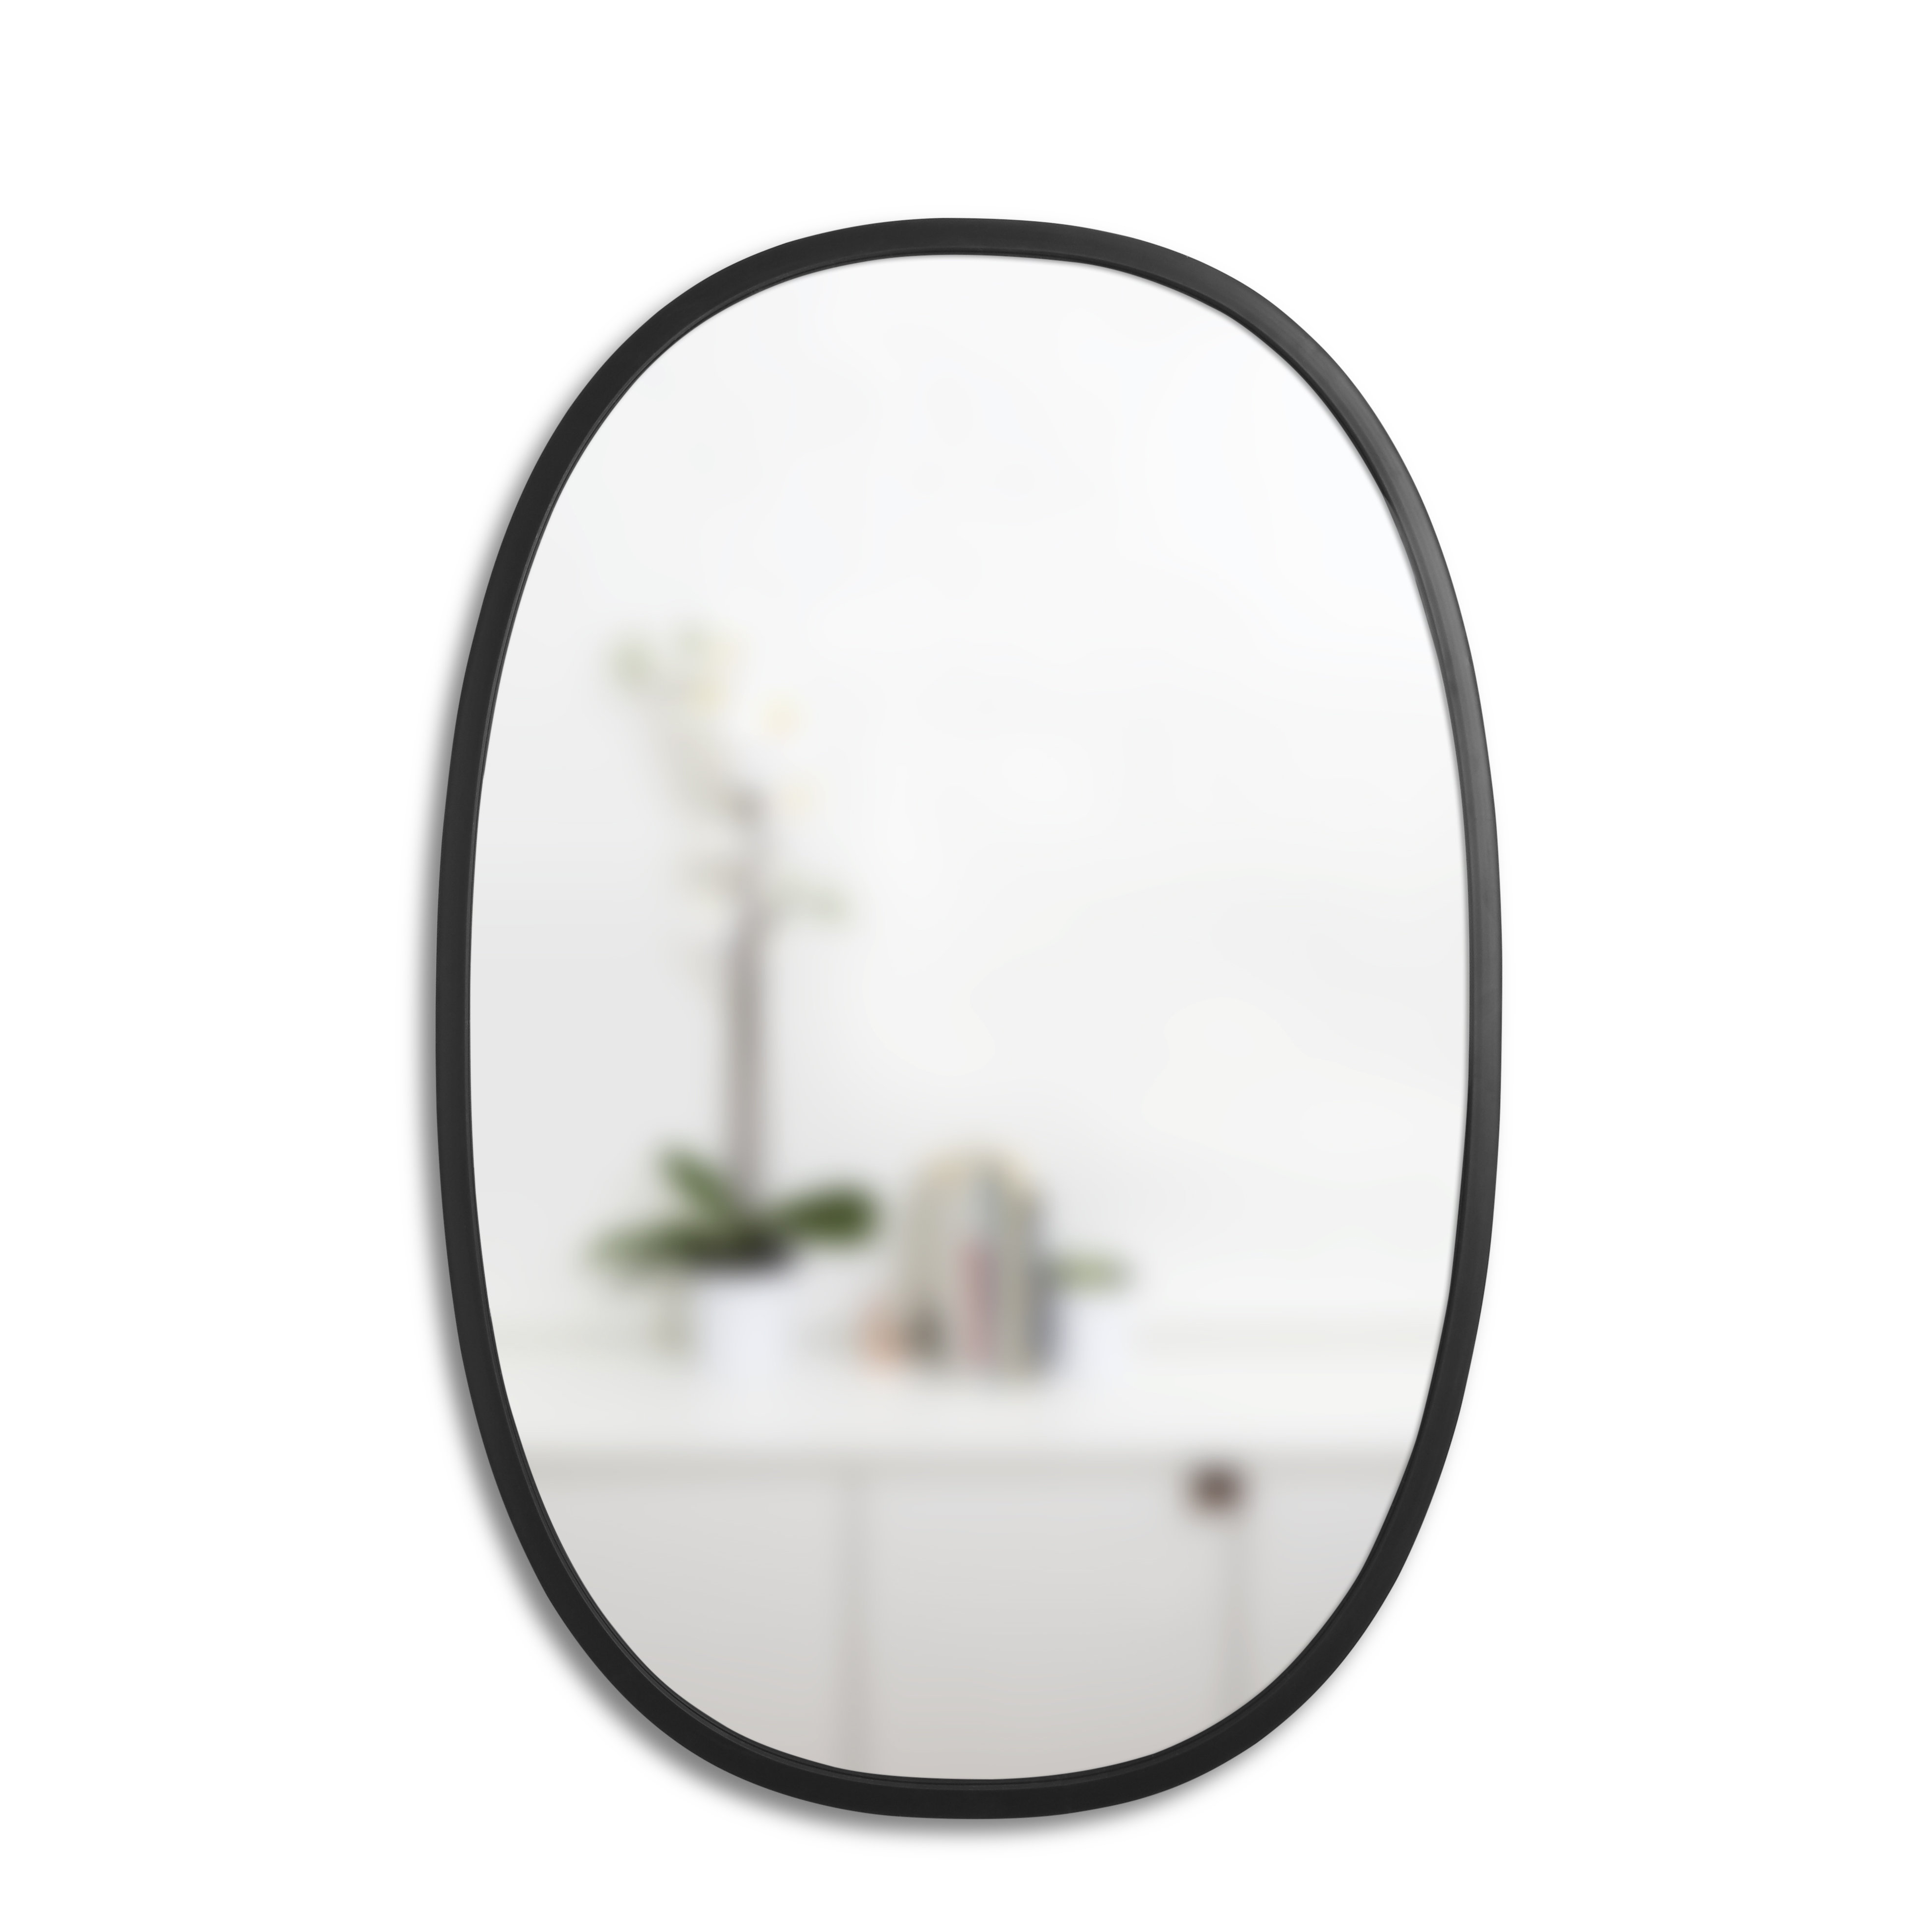 Umbra Hub Modern Contemporary Accent Mirror With Best And Newest Hub Modern And Contemporary Accent Mirrors (View 15 of 20)